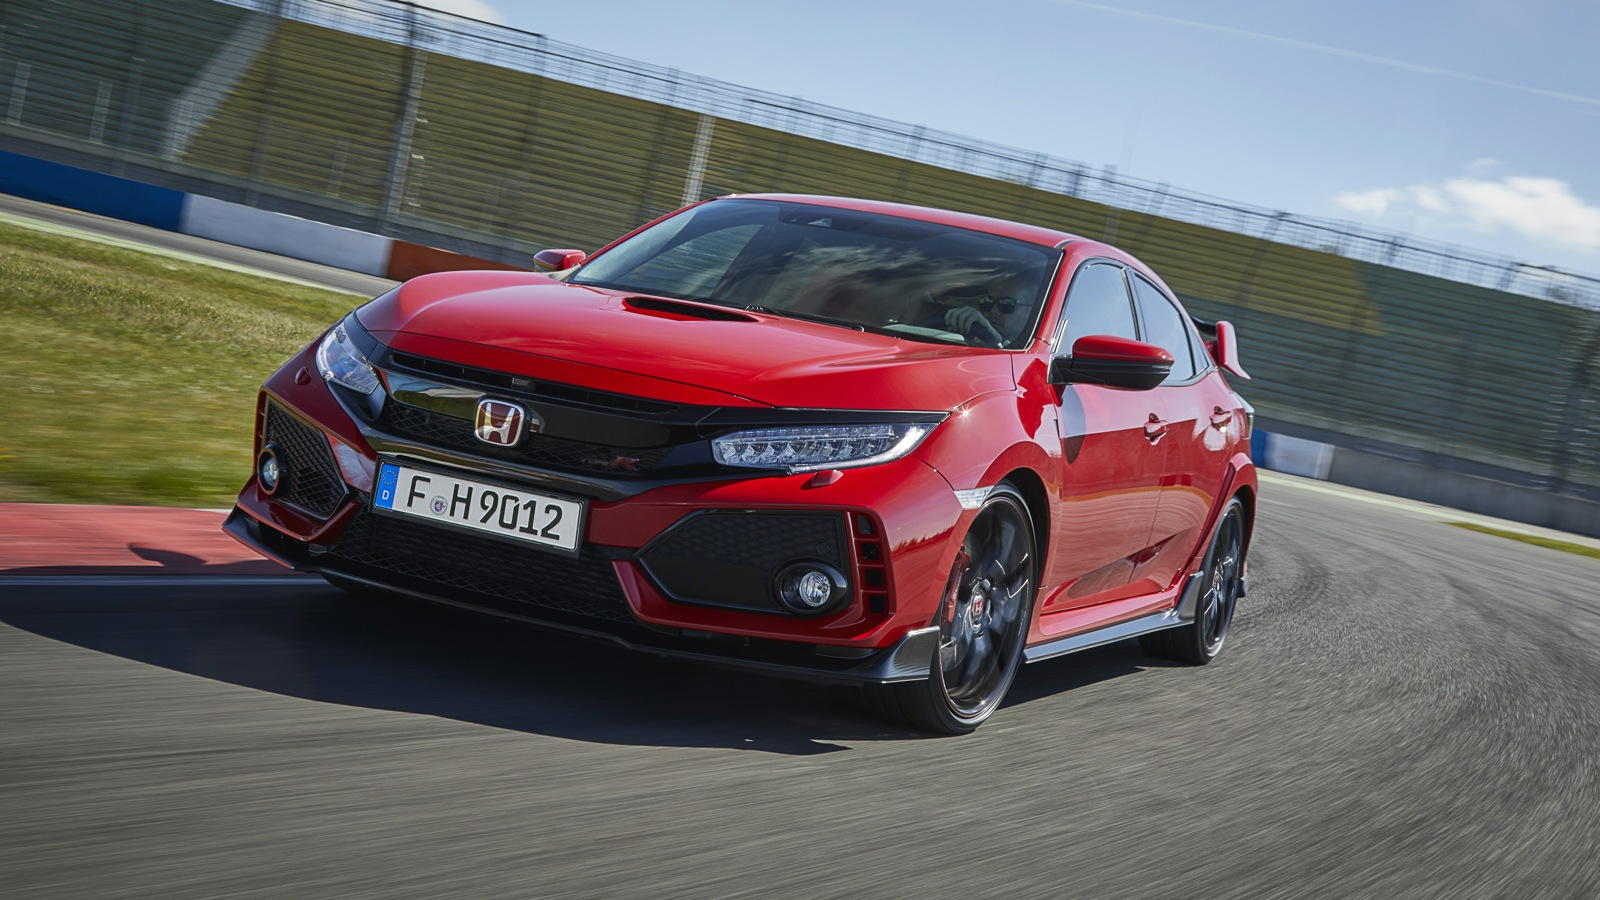 Honda Civic Deportivo 2017 >> 2018 Honda Civic Type R review - photos | CarAdvice